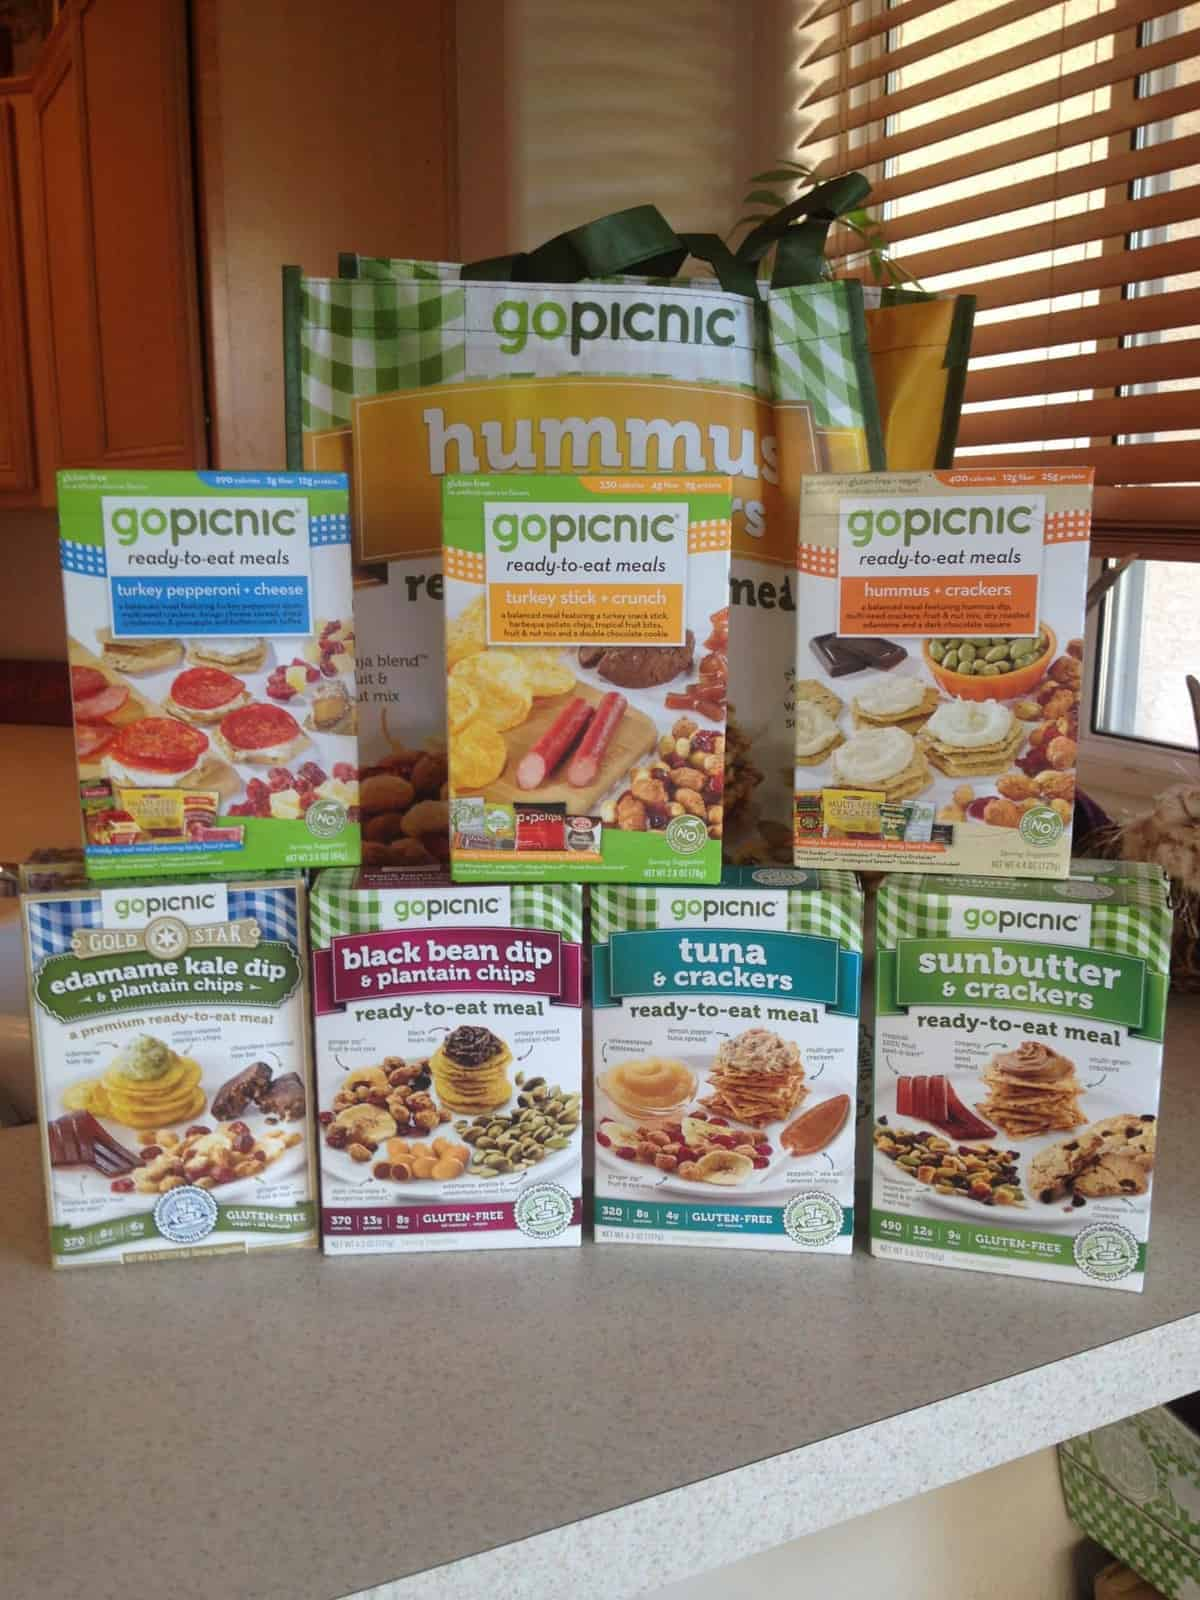 25 Days of Gluten-Free Giveaways™ #11 Go Picnic